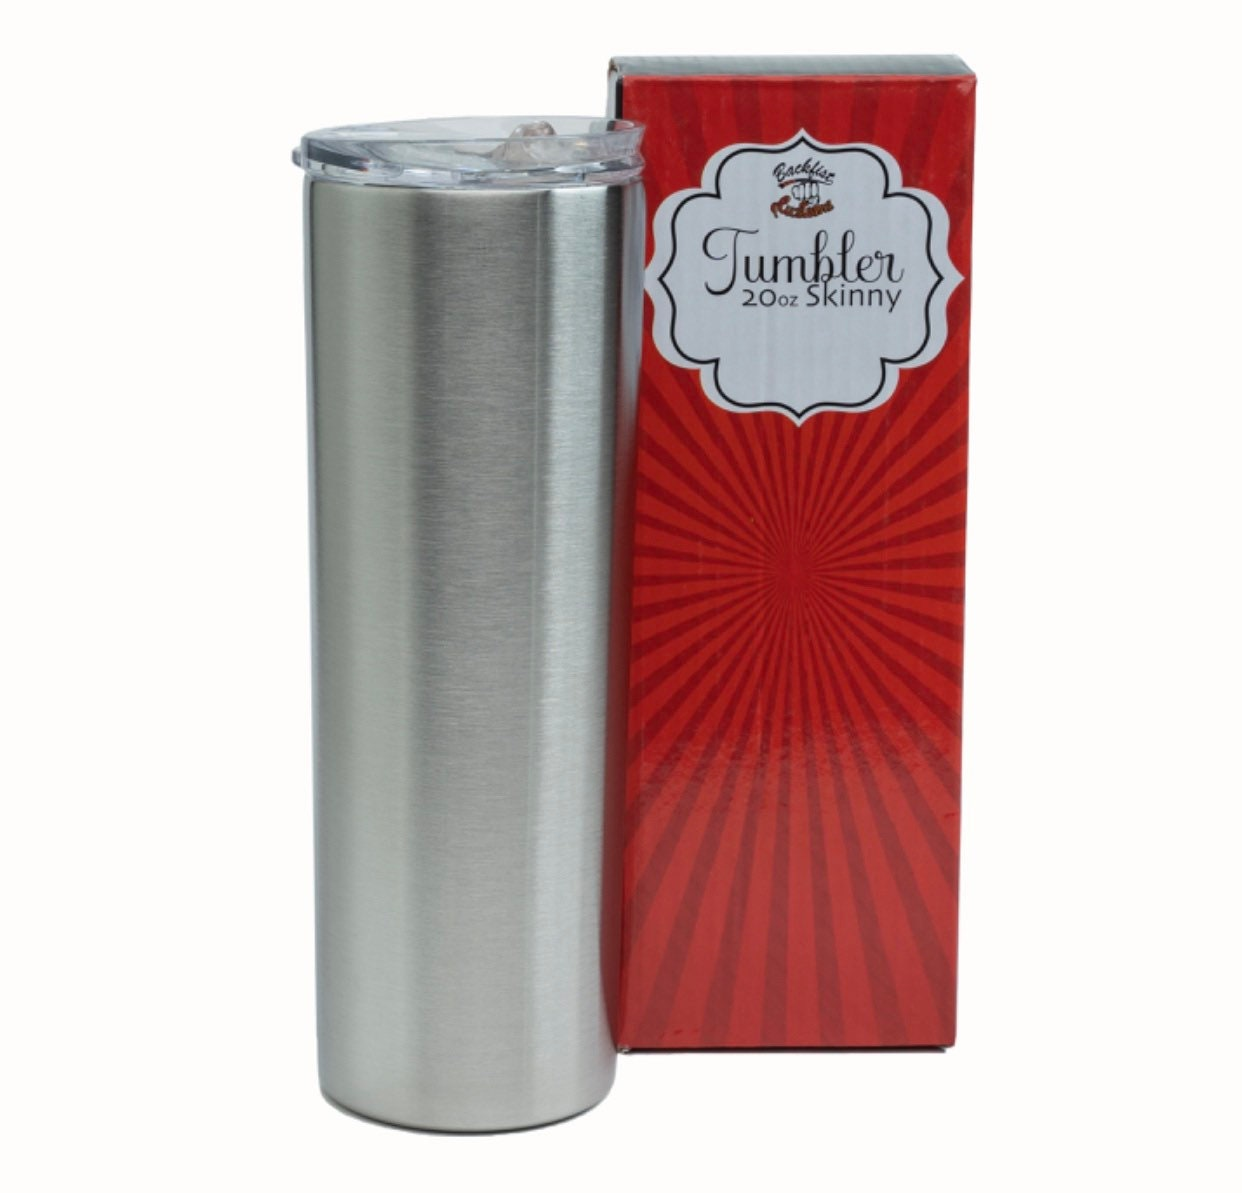 20oz Skinny Stainless Steel TUMBLER || Comes with a straw